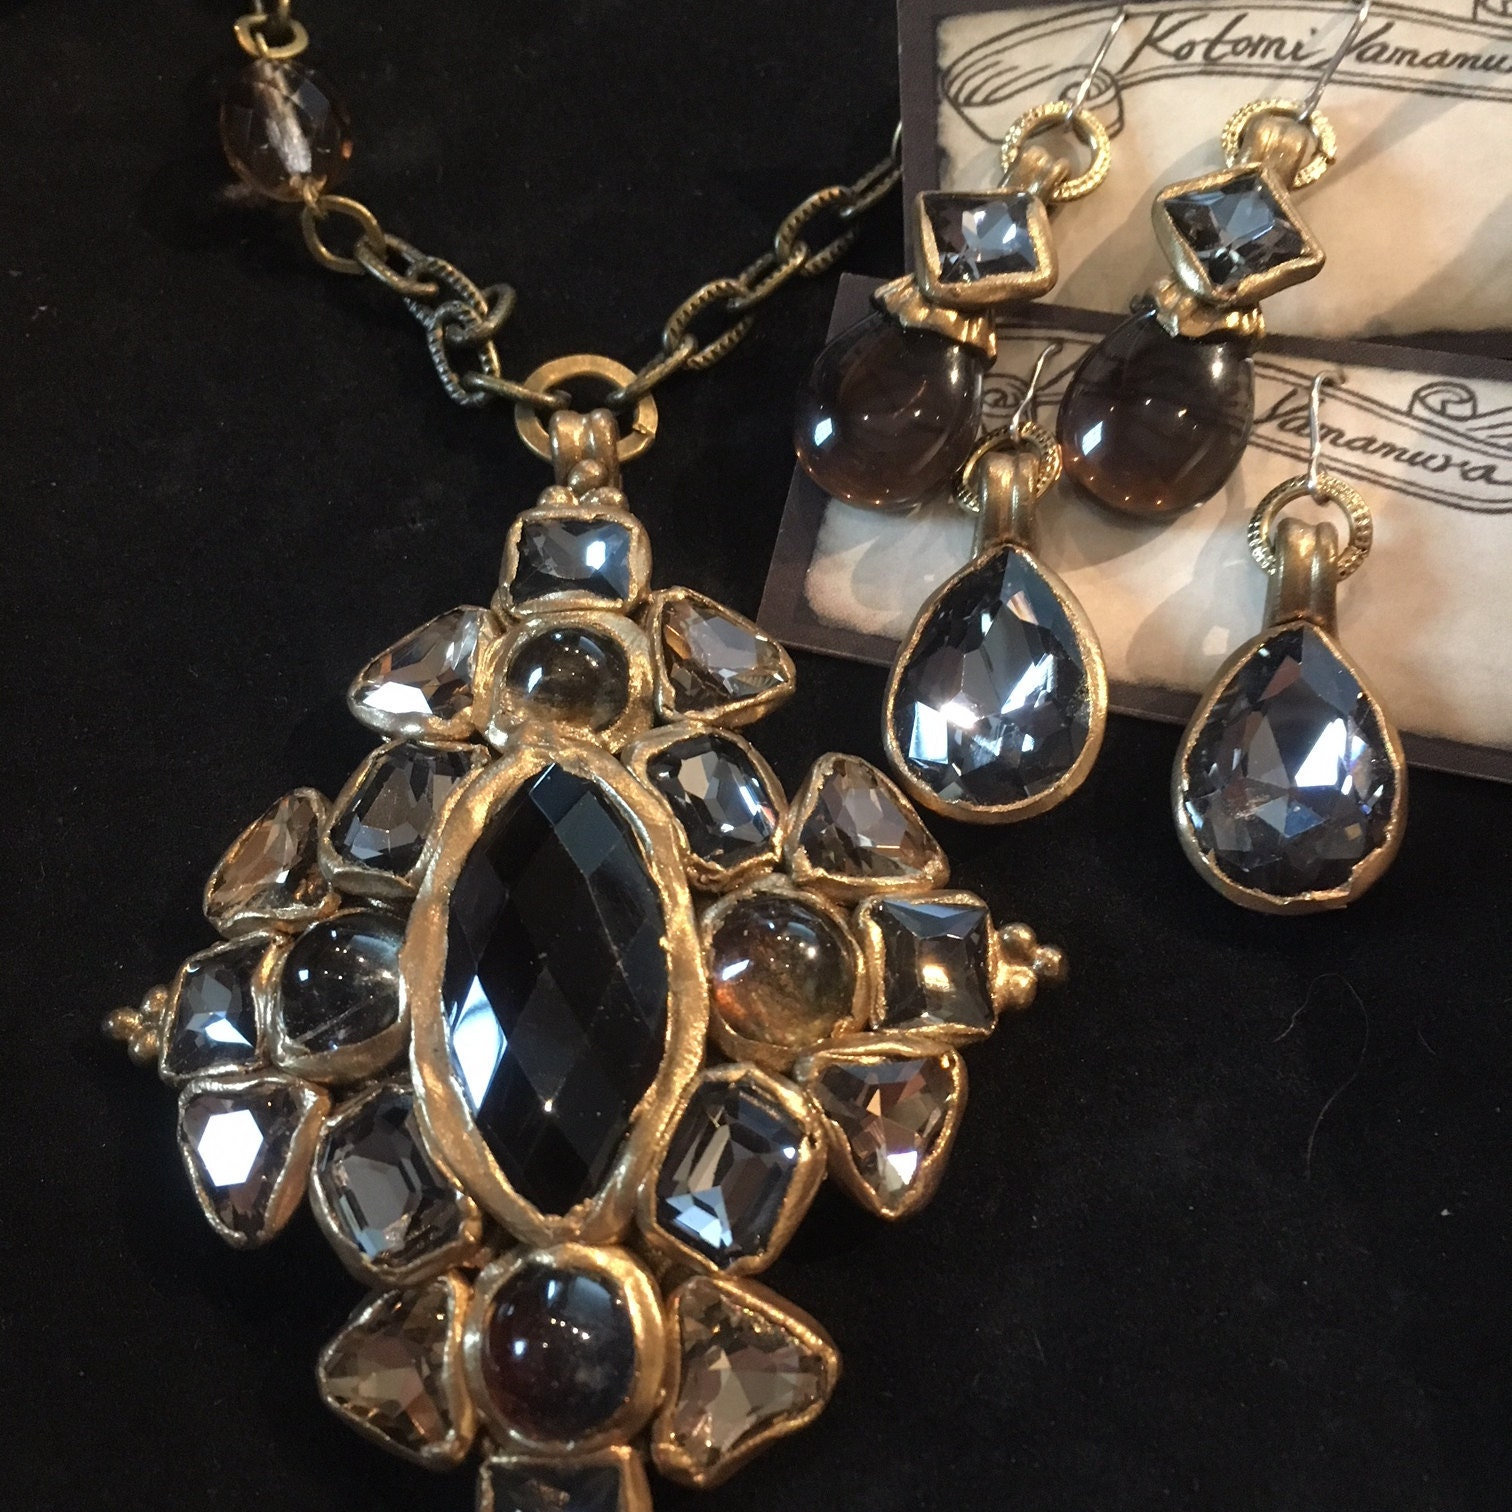 JANET MAGGS added a photo of their purchase